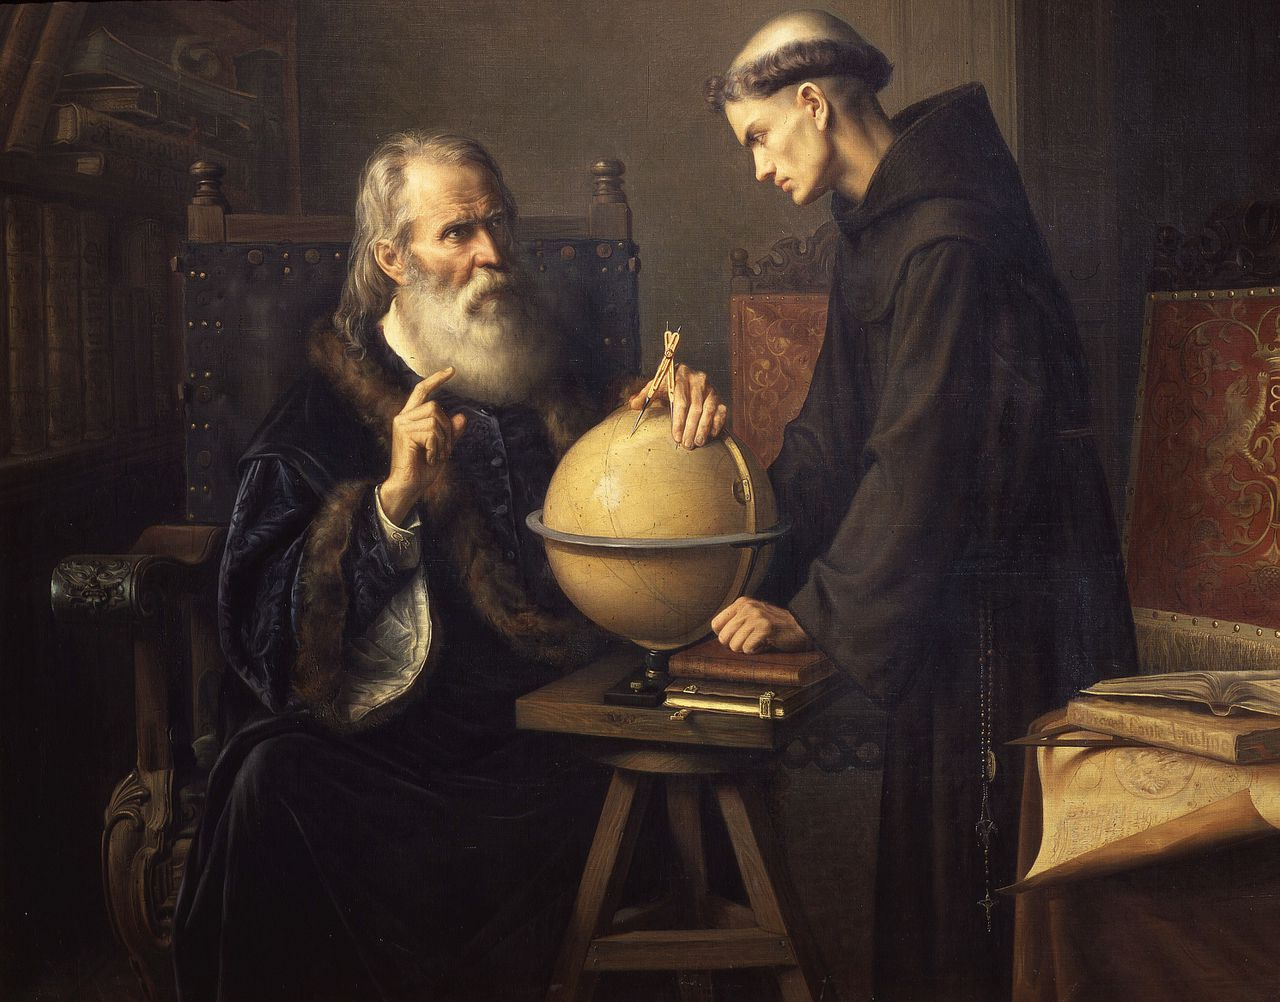 Galileo Galilei licht zijn astronomische ideeën toe. Een schilderij van Felix Farra uit 1873 / The Art Archive GALILEO Galilei, 1564-1642 Italian mathematician astronomer and physicist, explaining his new research at the University of Padua, Italy, painted 1873 -- FARRA, Felix : 1845-1919 : Mexican Photo Credit: [ The Art Archive / National Palace Mexico City / Gianni Dagli Orti ]